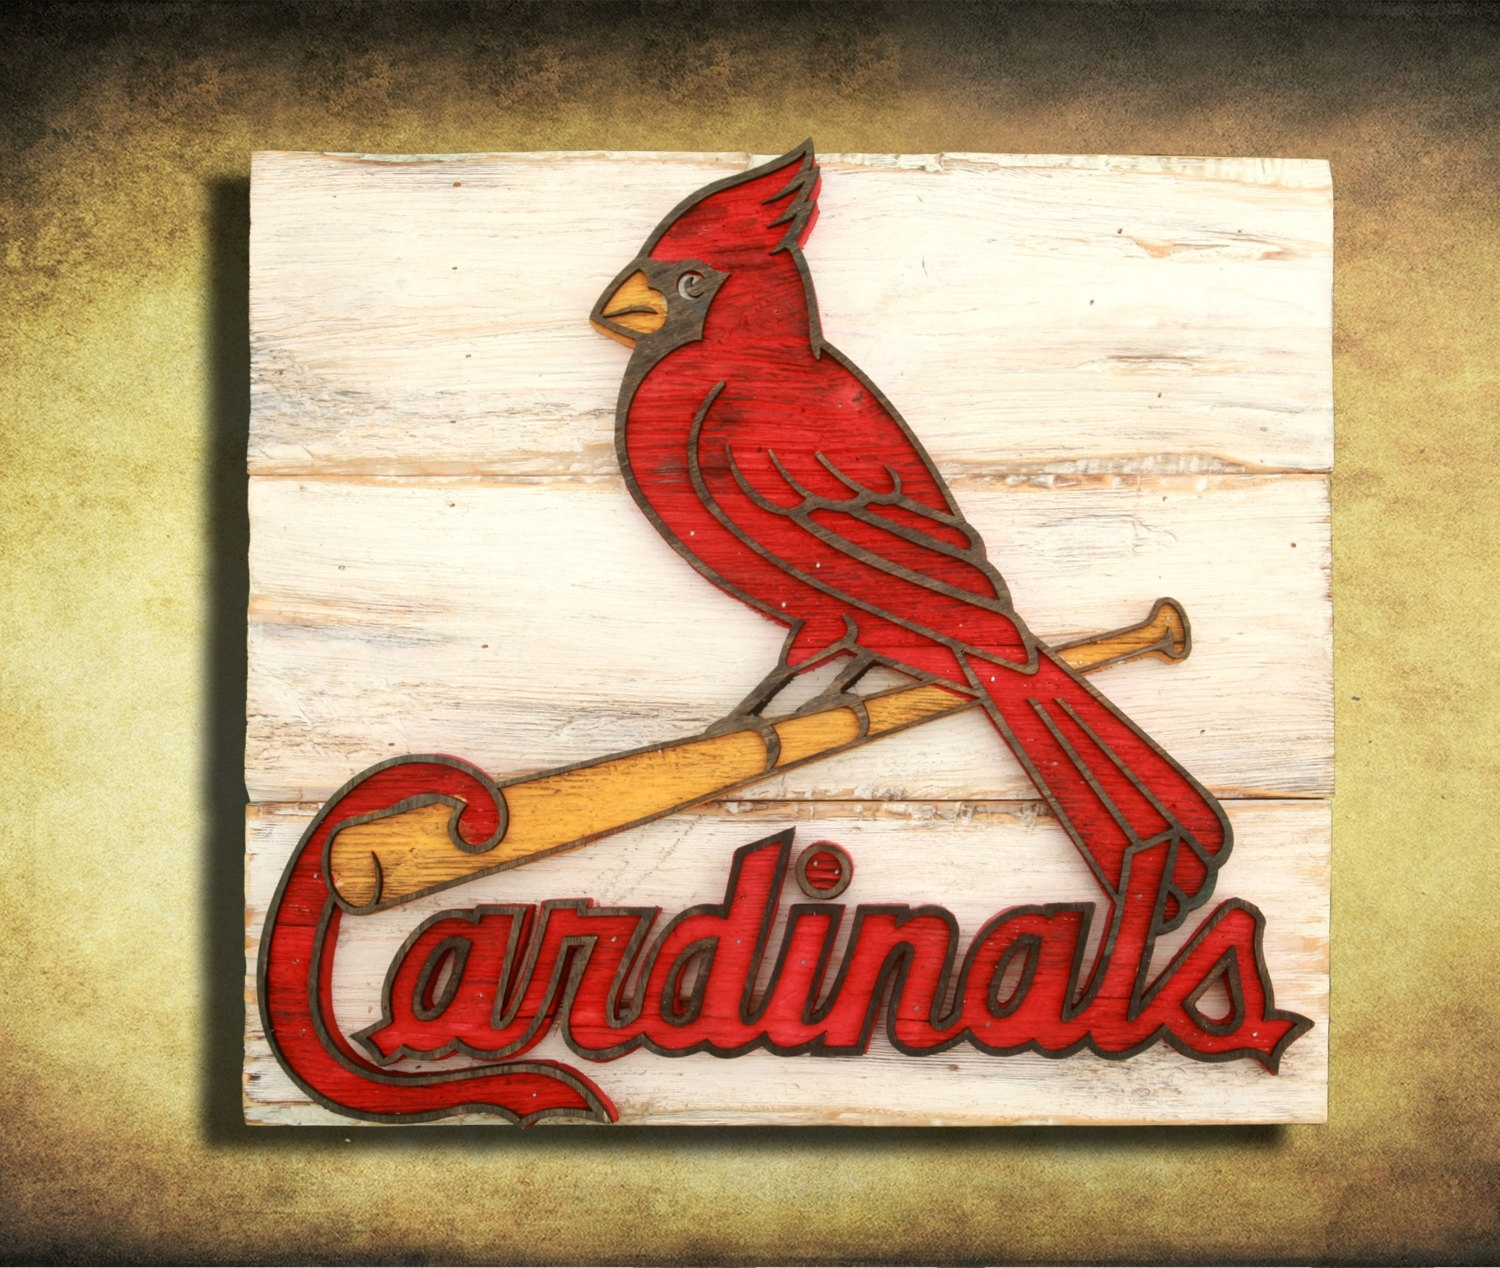 Saint Louis Cardinals Handmade Distressed Wood Sign, Vintage, Art Intended For 2017 Baseball Wall Art (Gallery 8 of 20)